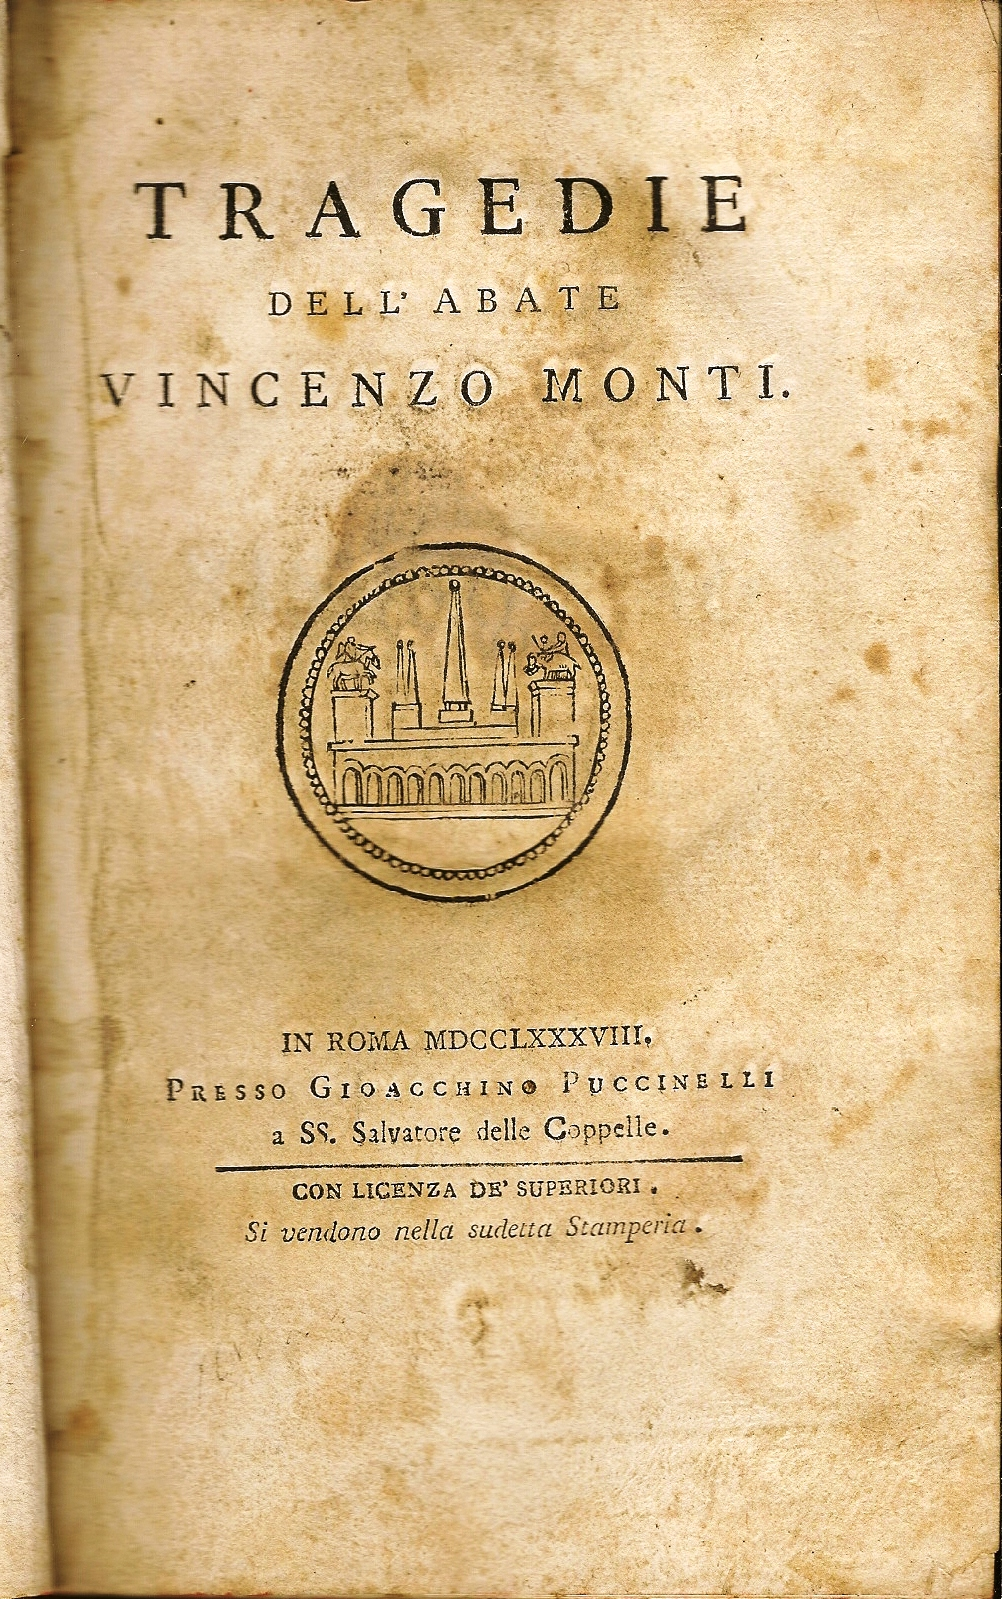 Tragedie dell'abate Vincenzo Monti